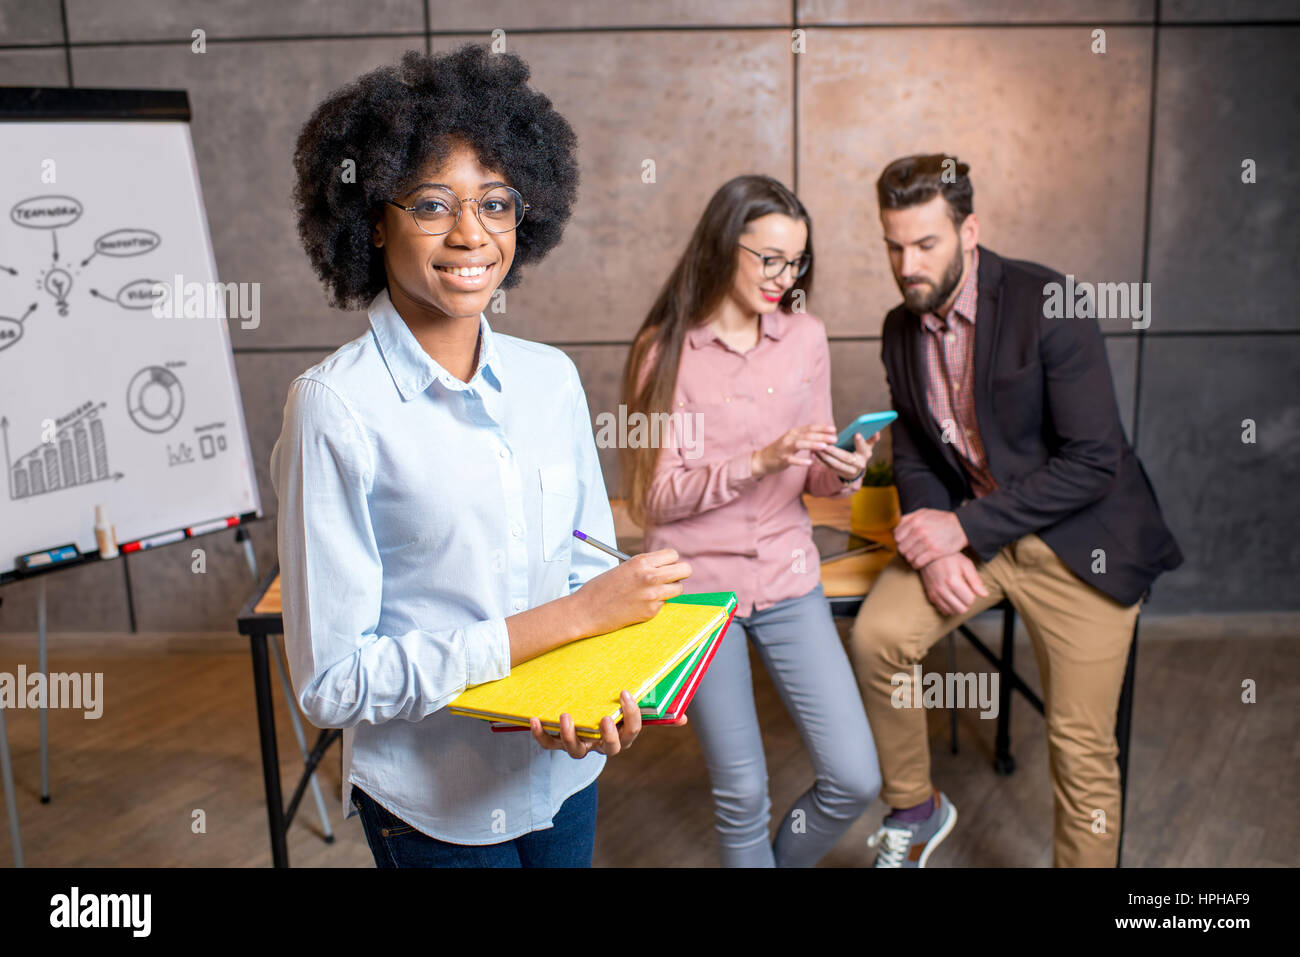 Woman's portrait with coworkers - Stock Image